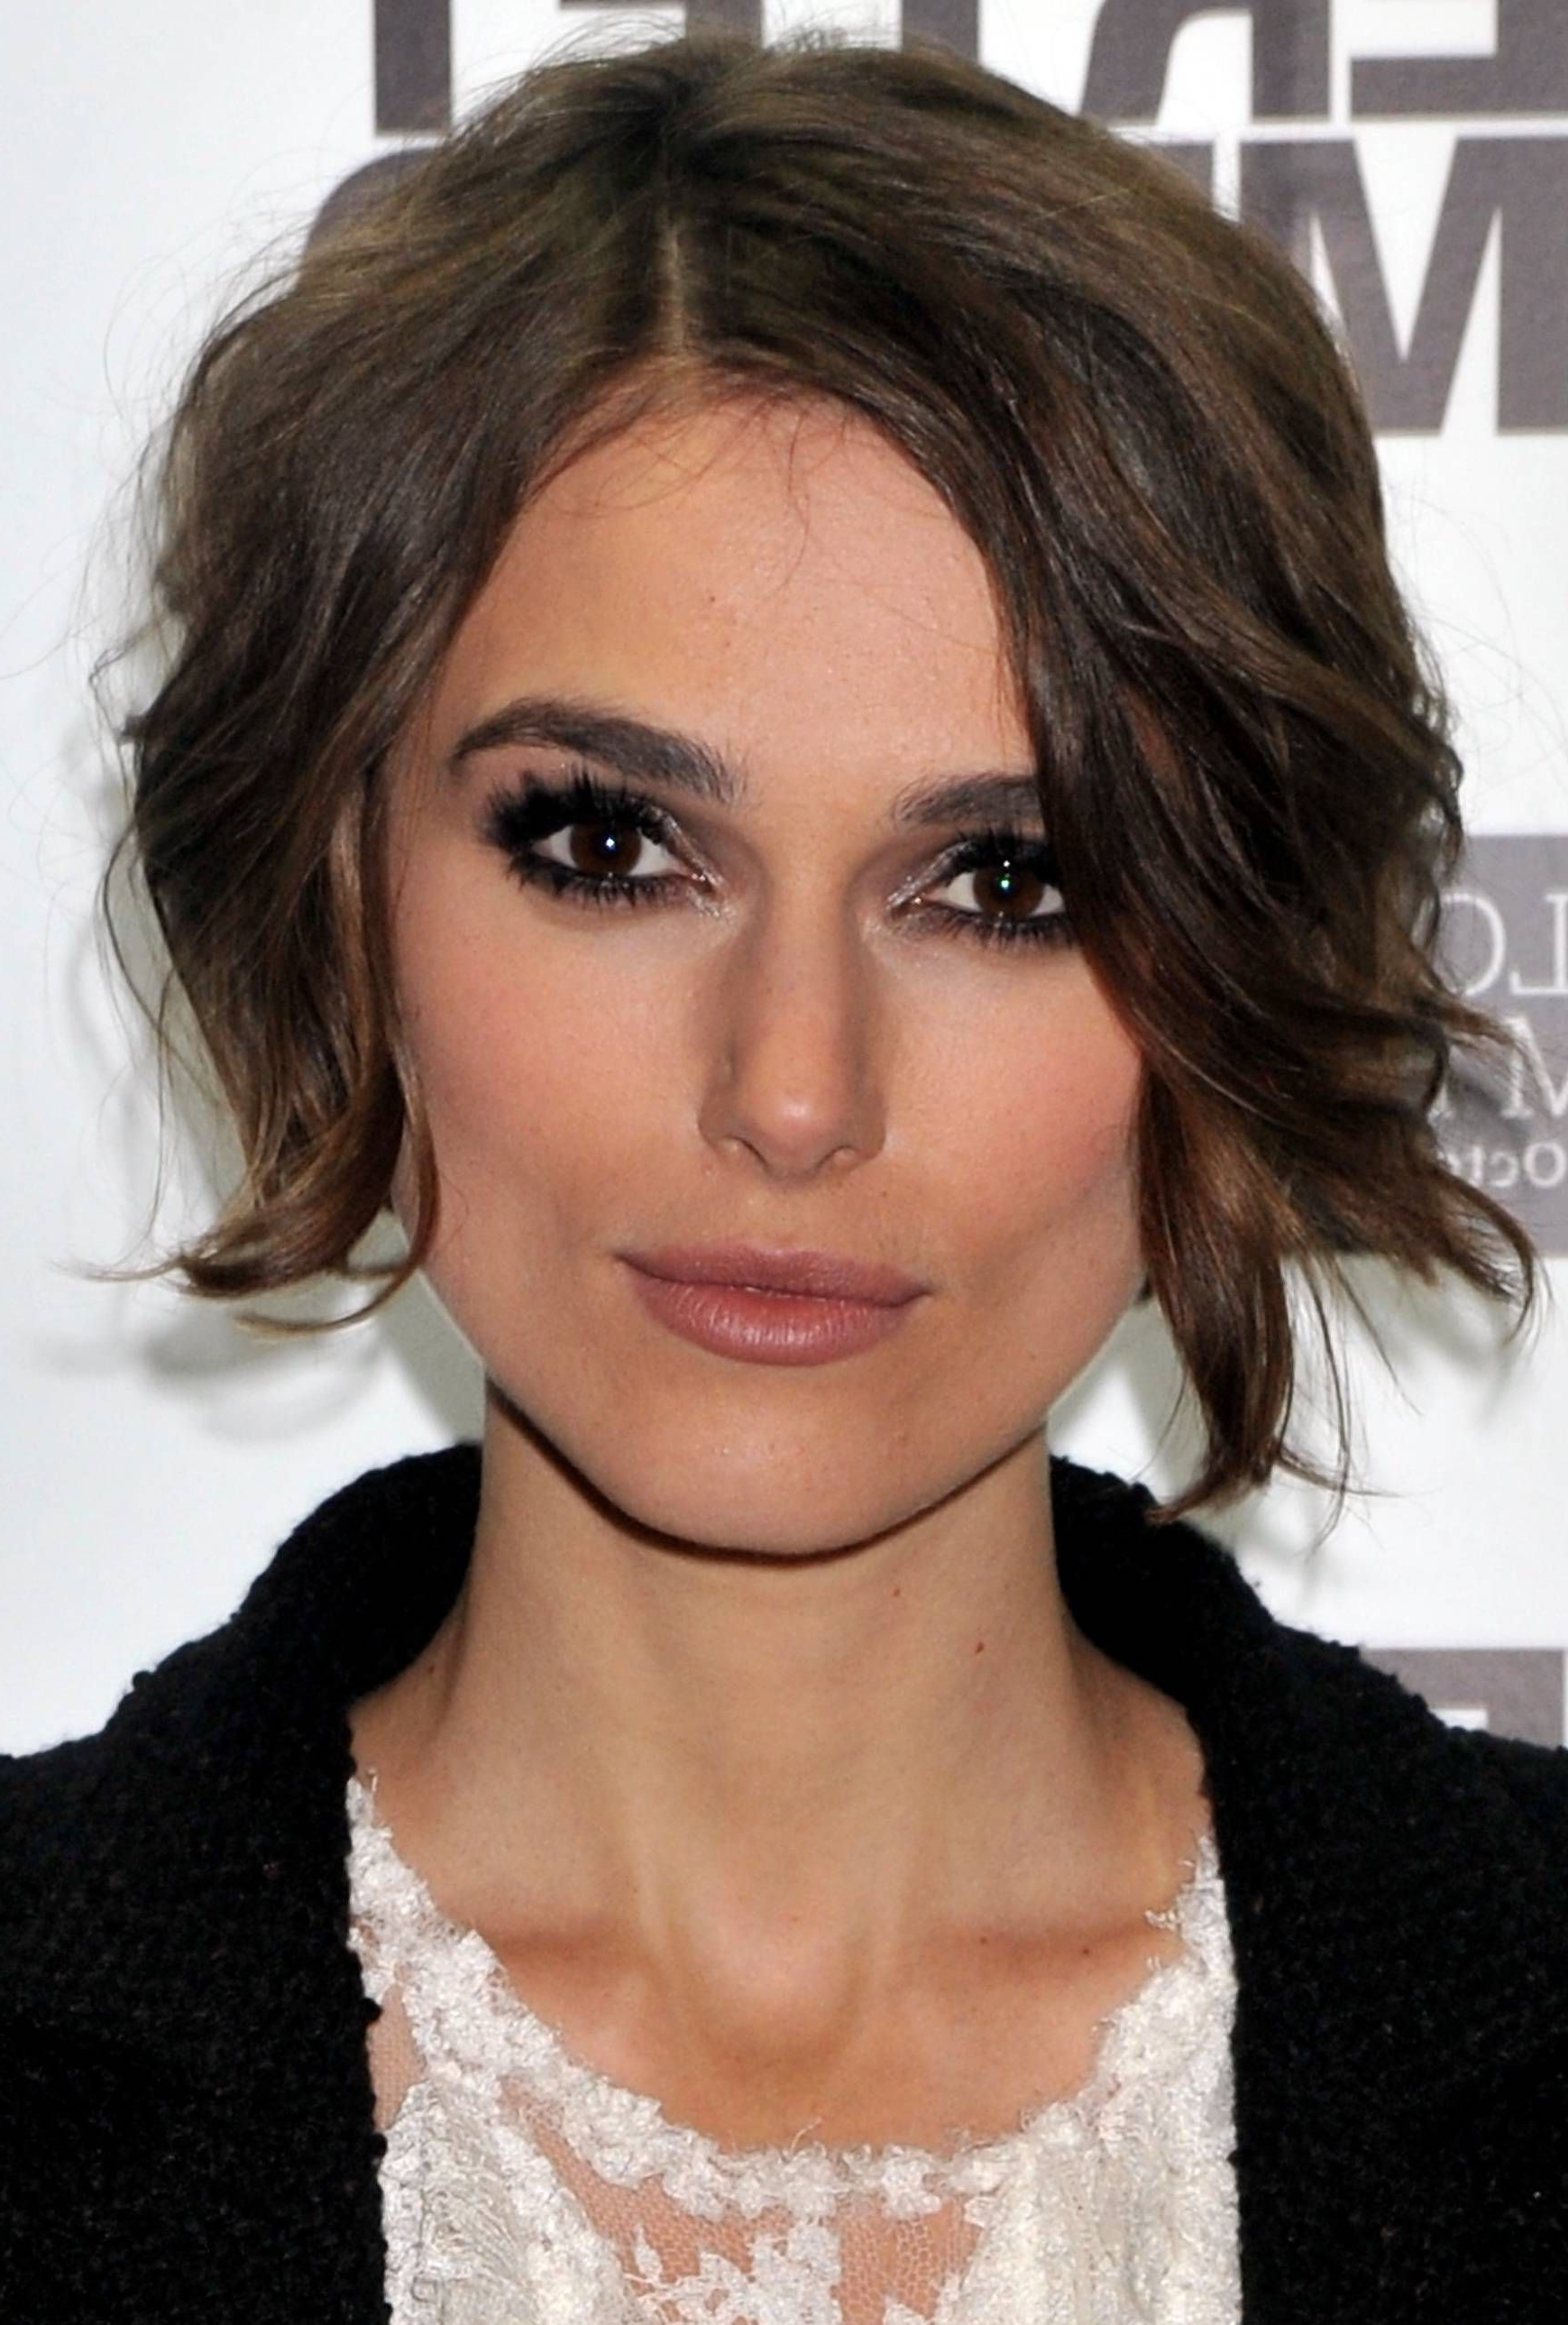 22 Inspiring Short Haircuts For Every Face Shape   Hairific With Short Haircuts For Square Face Shape (View 6 of 25)